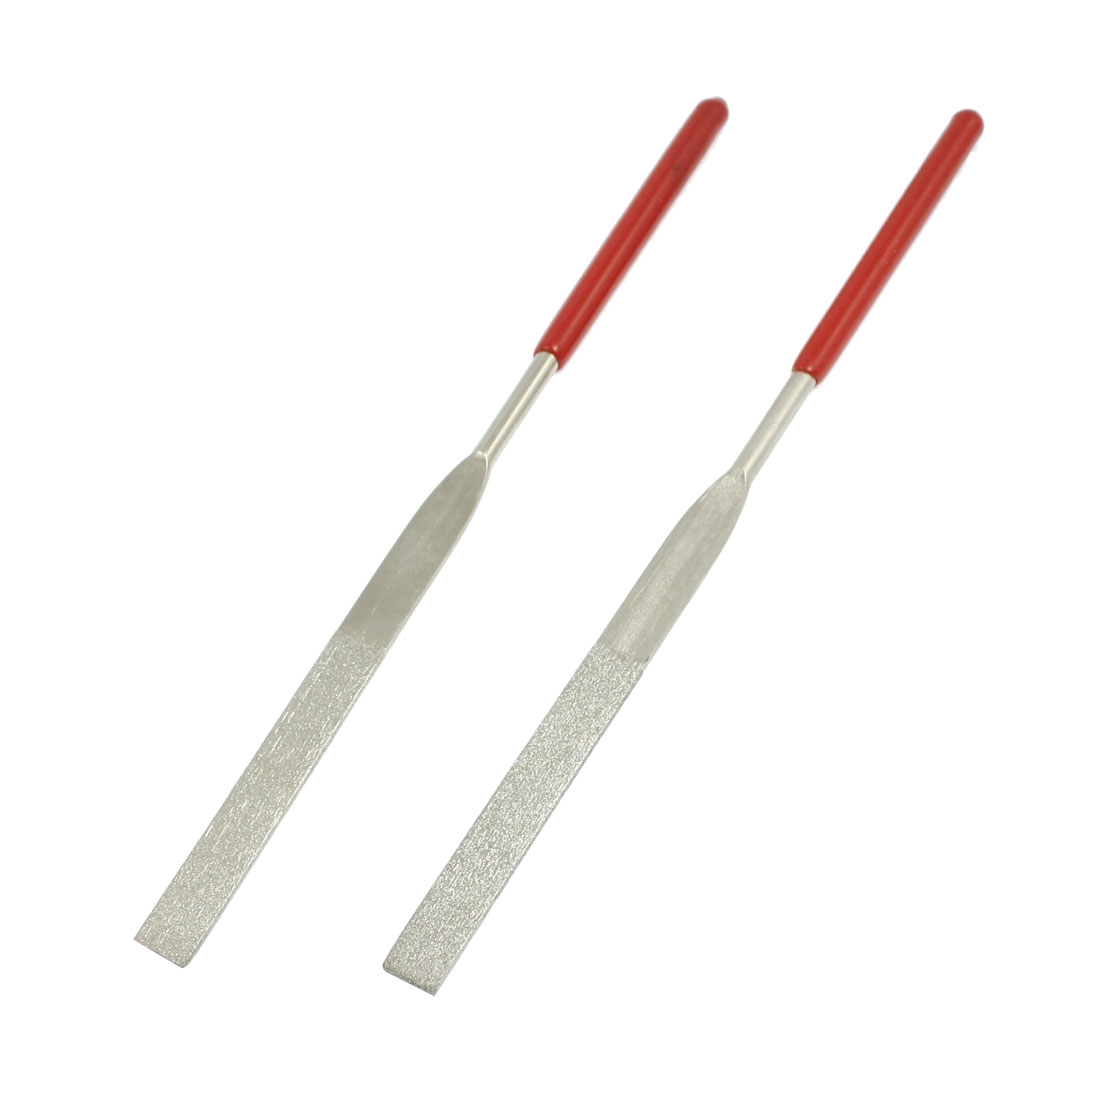 2 Pcs 160mm Long Jewlery Flat Diamond Needle Files Grinding Tool